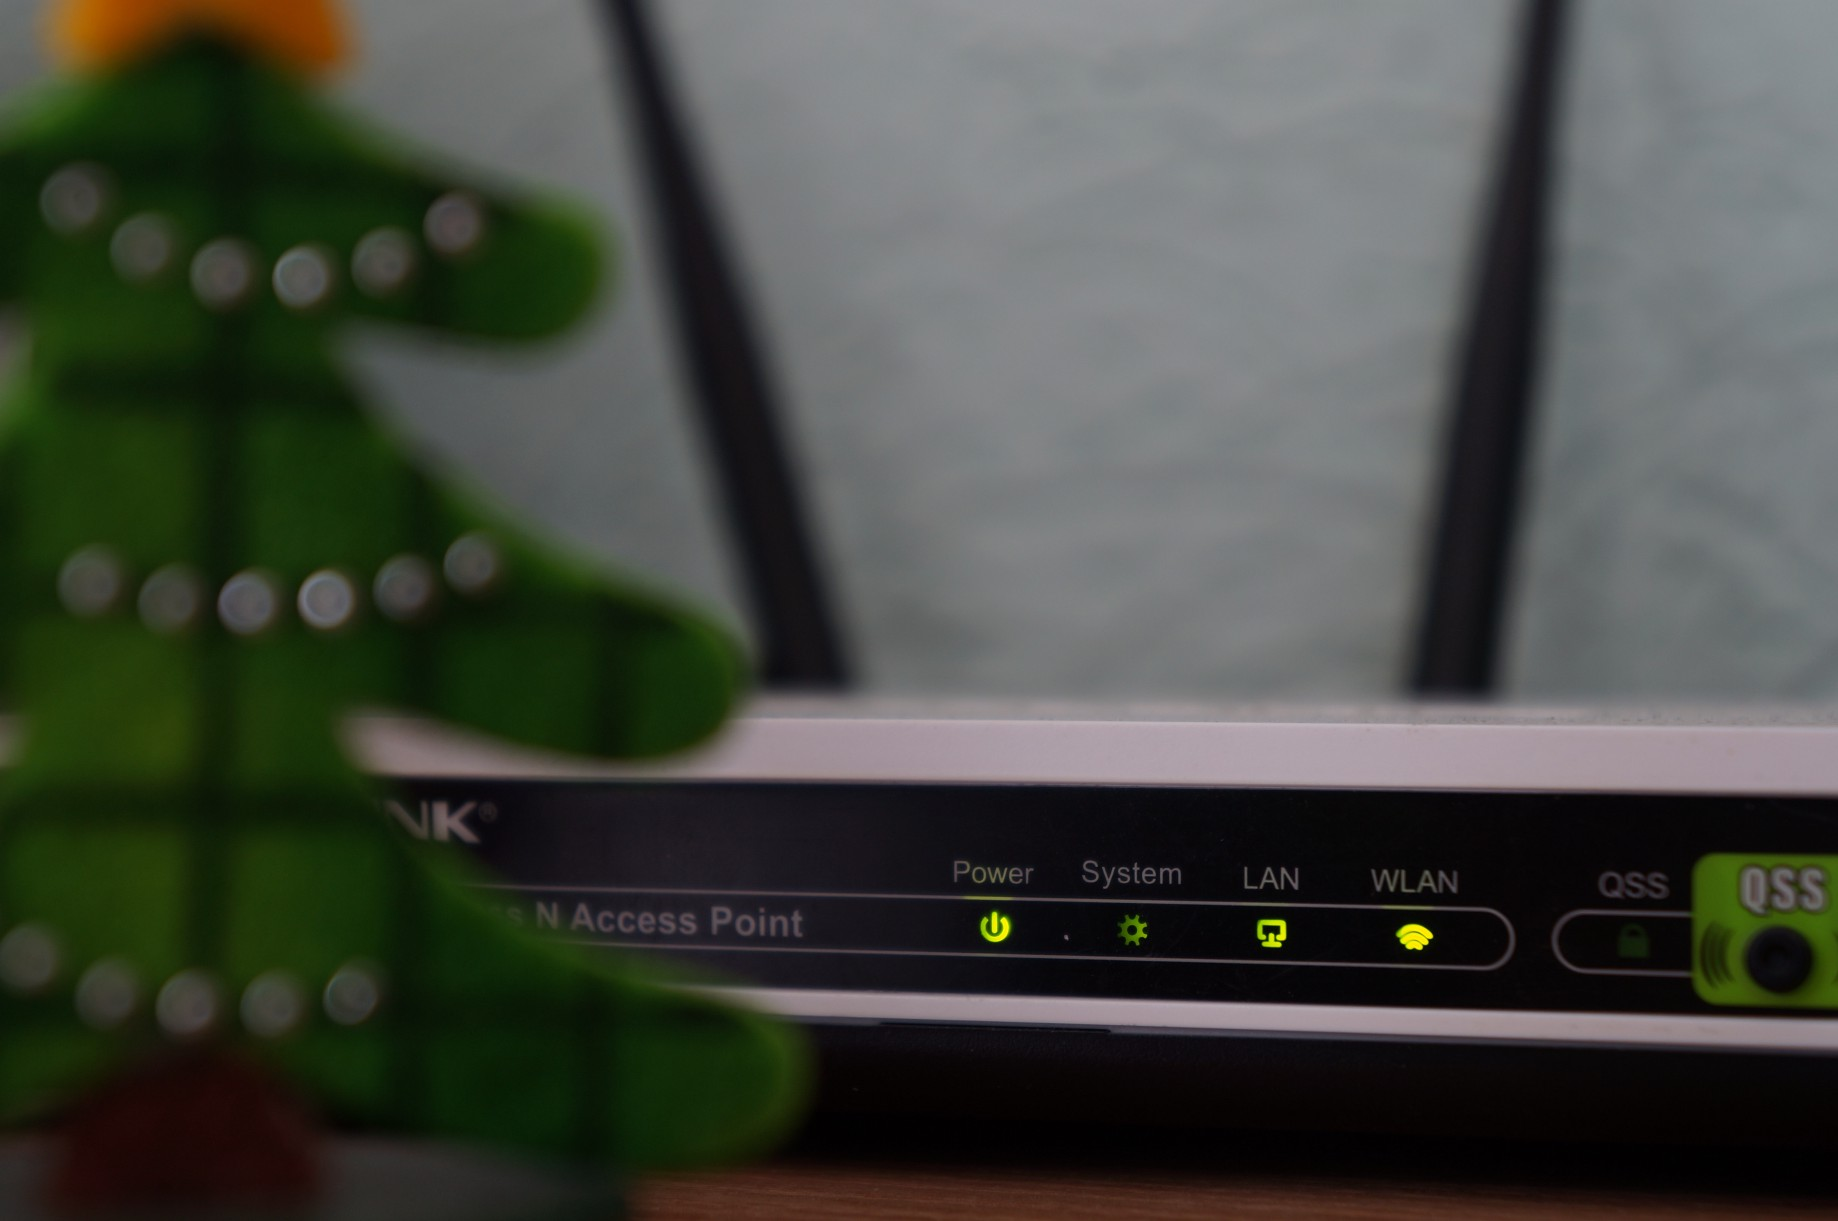 I installed Ubiquiti Unifi Access Points at home, and they saved my